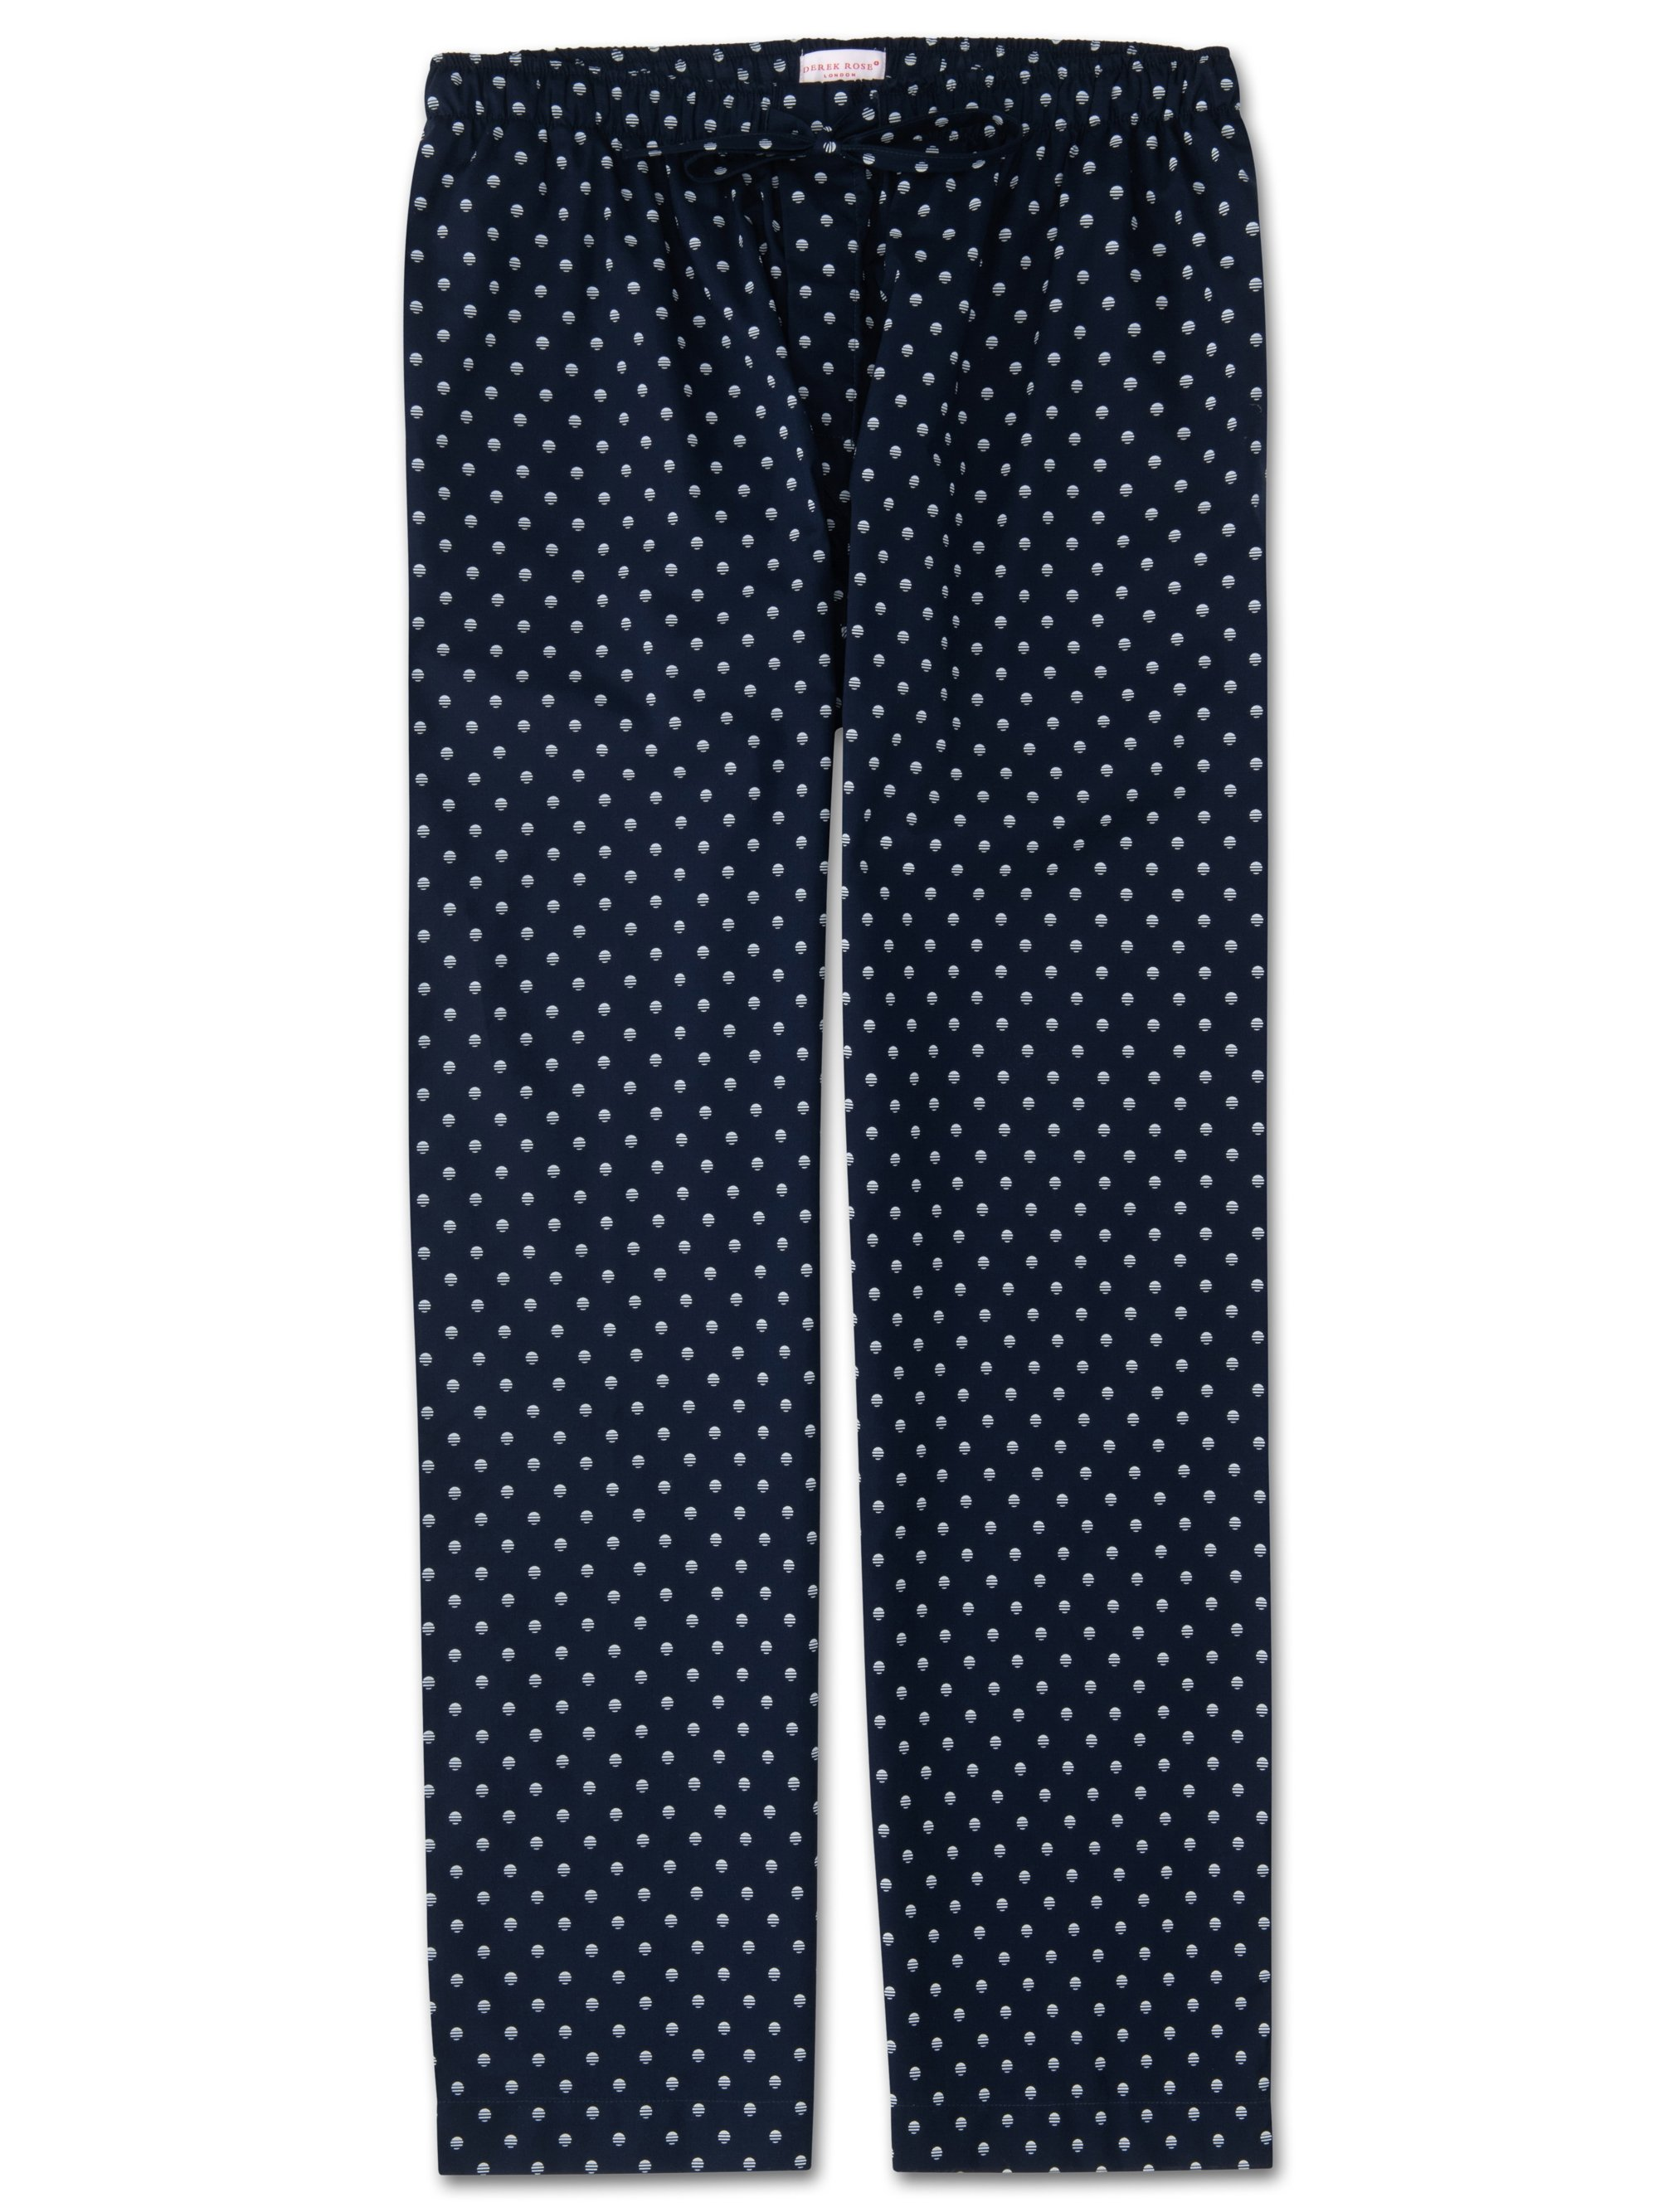 Men's Lounge Trousers Nelson 68 Cotton Batiste Navy